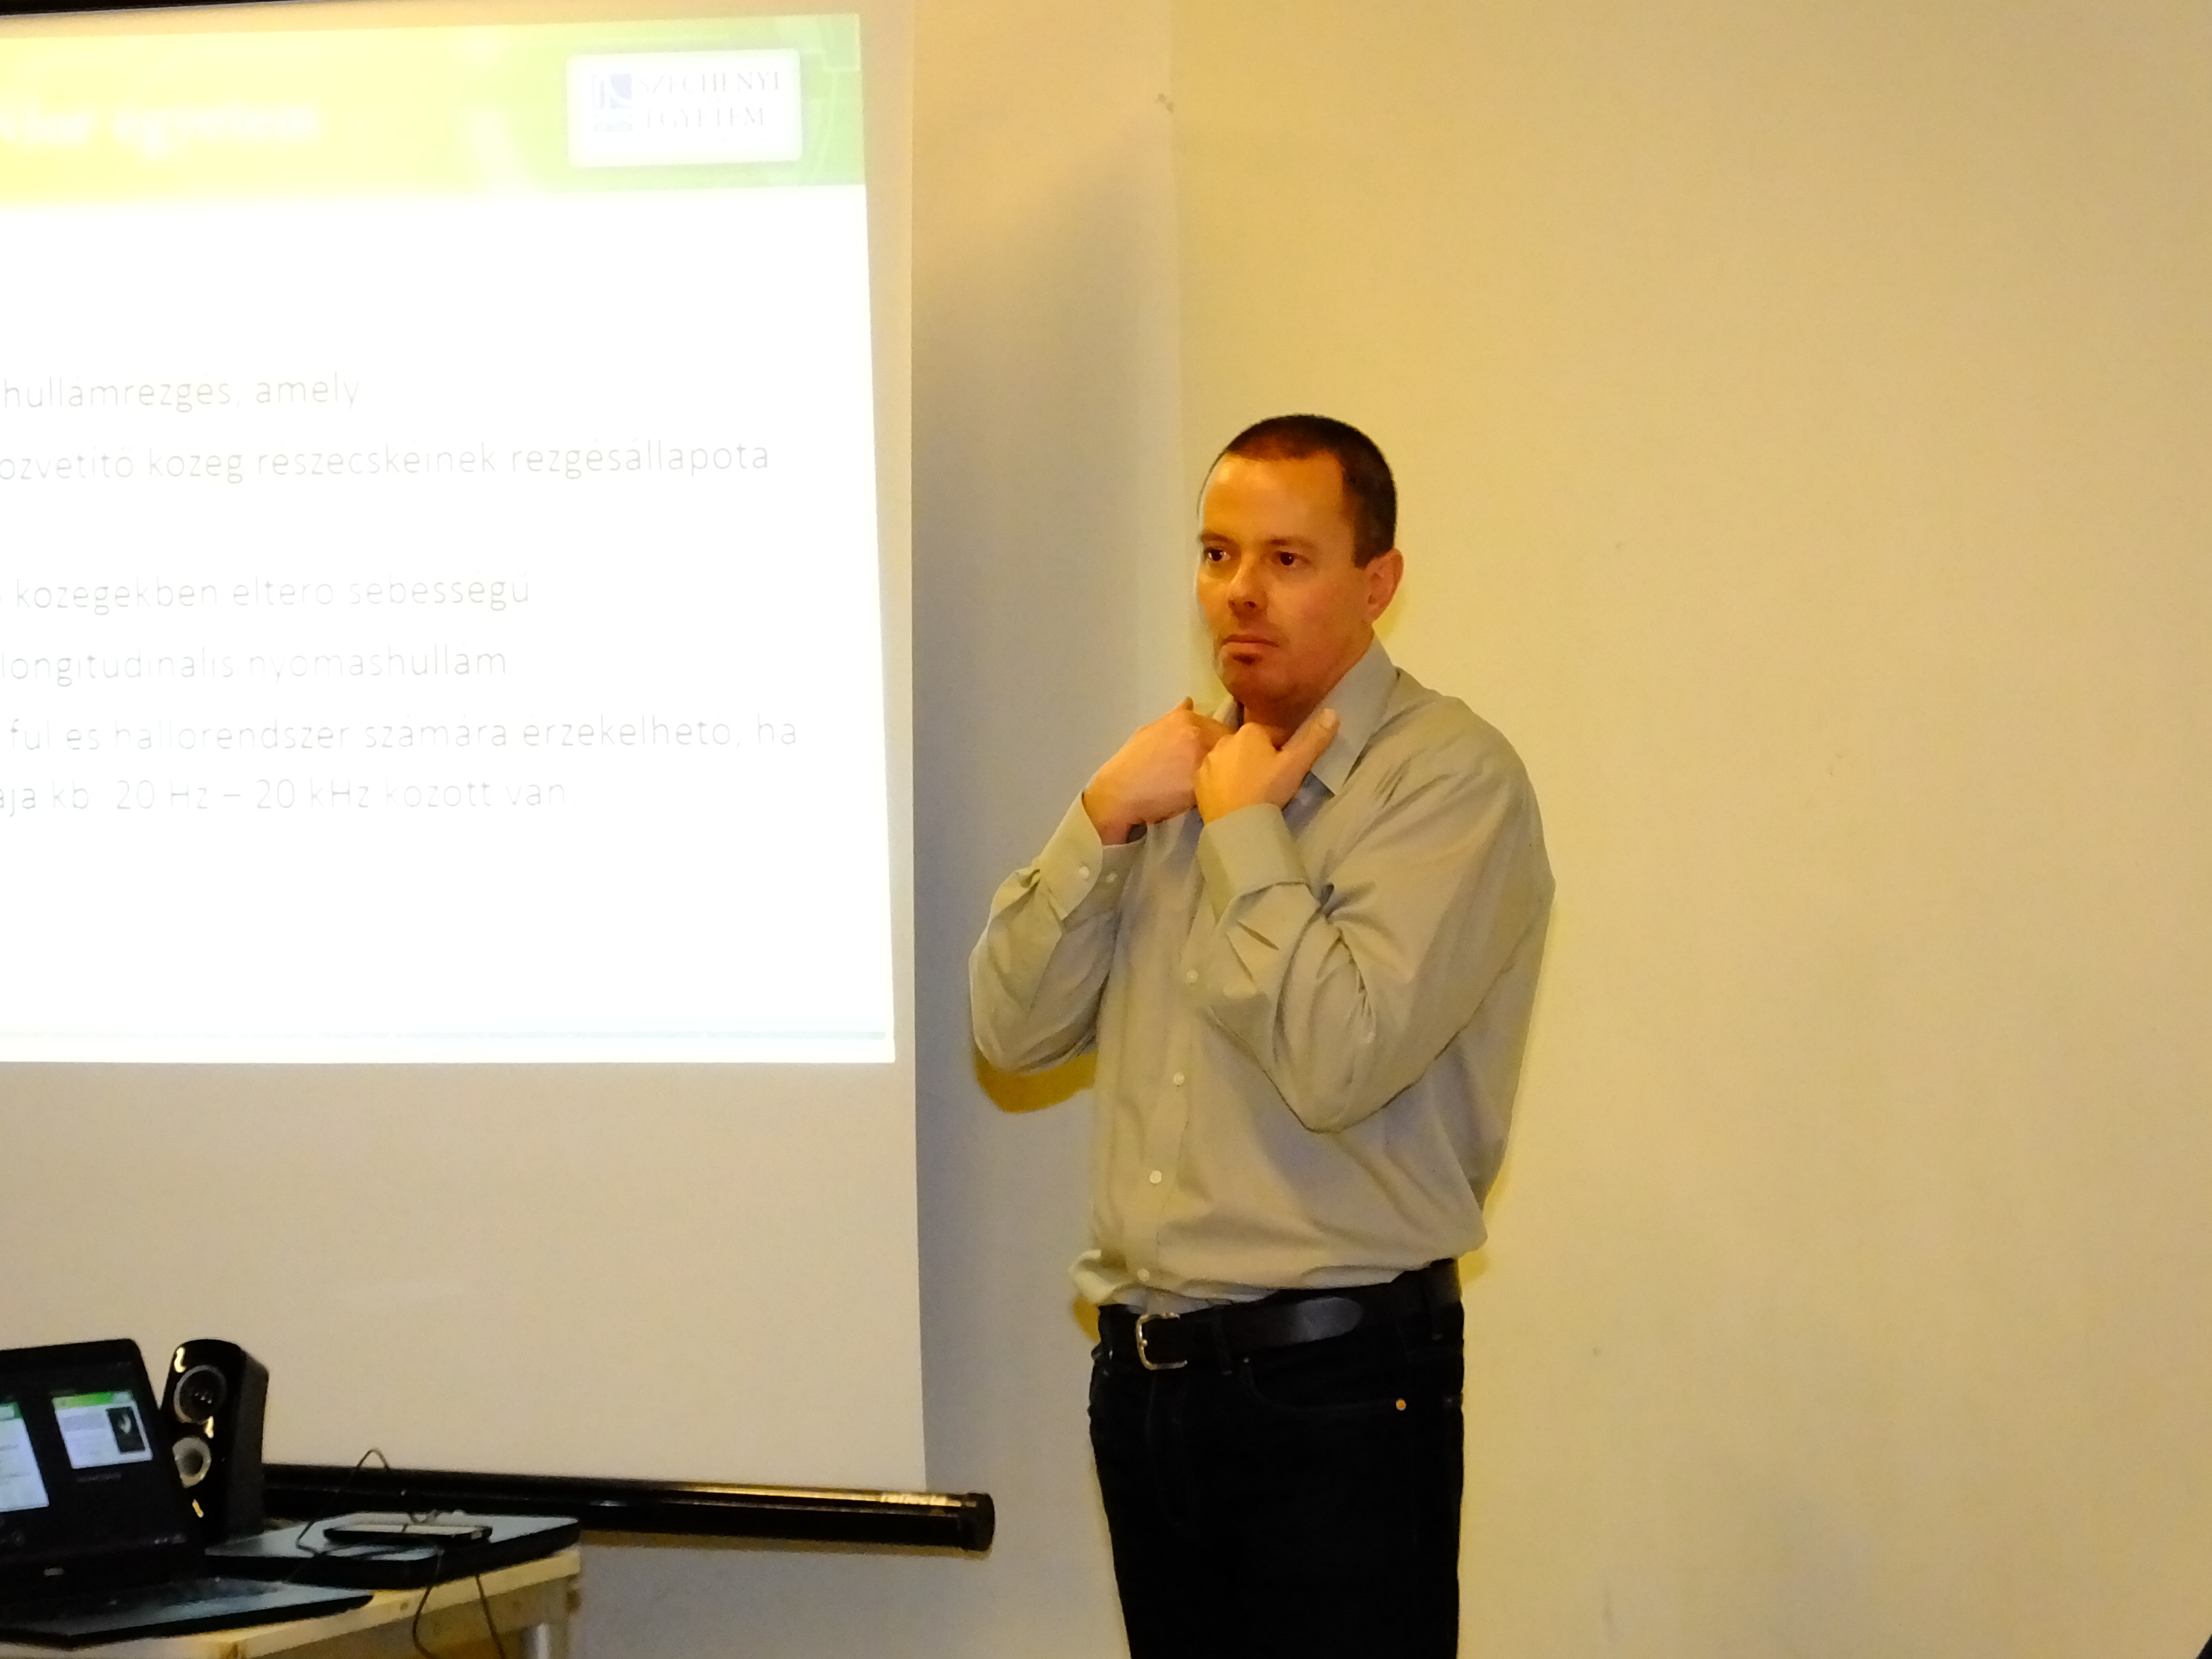 Our own György Wersényi holding a presentation on the Sound of Vision project.